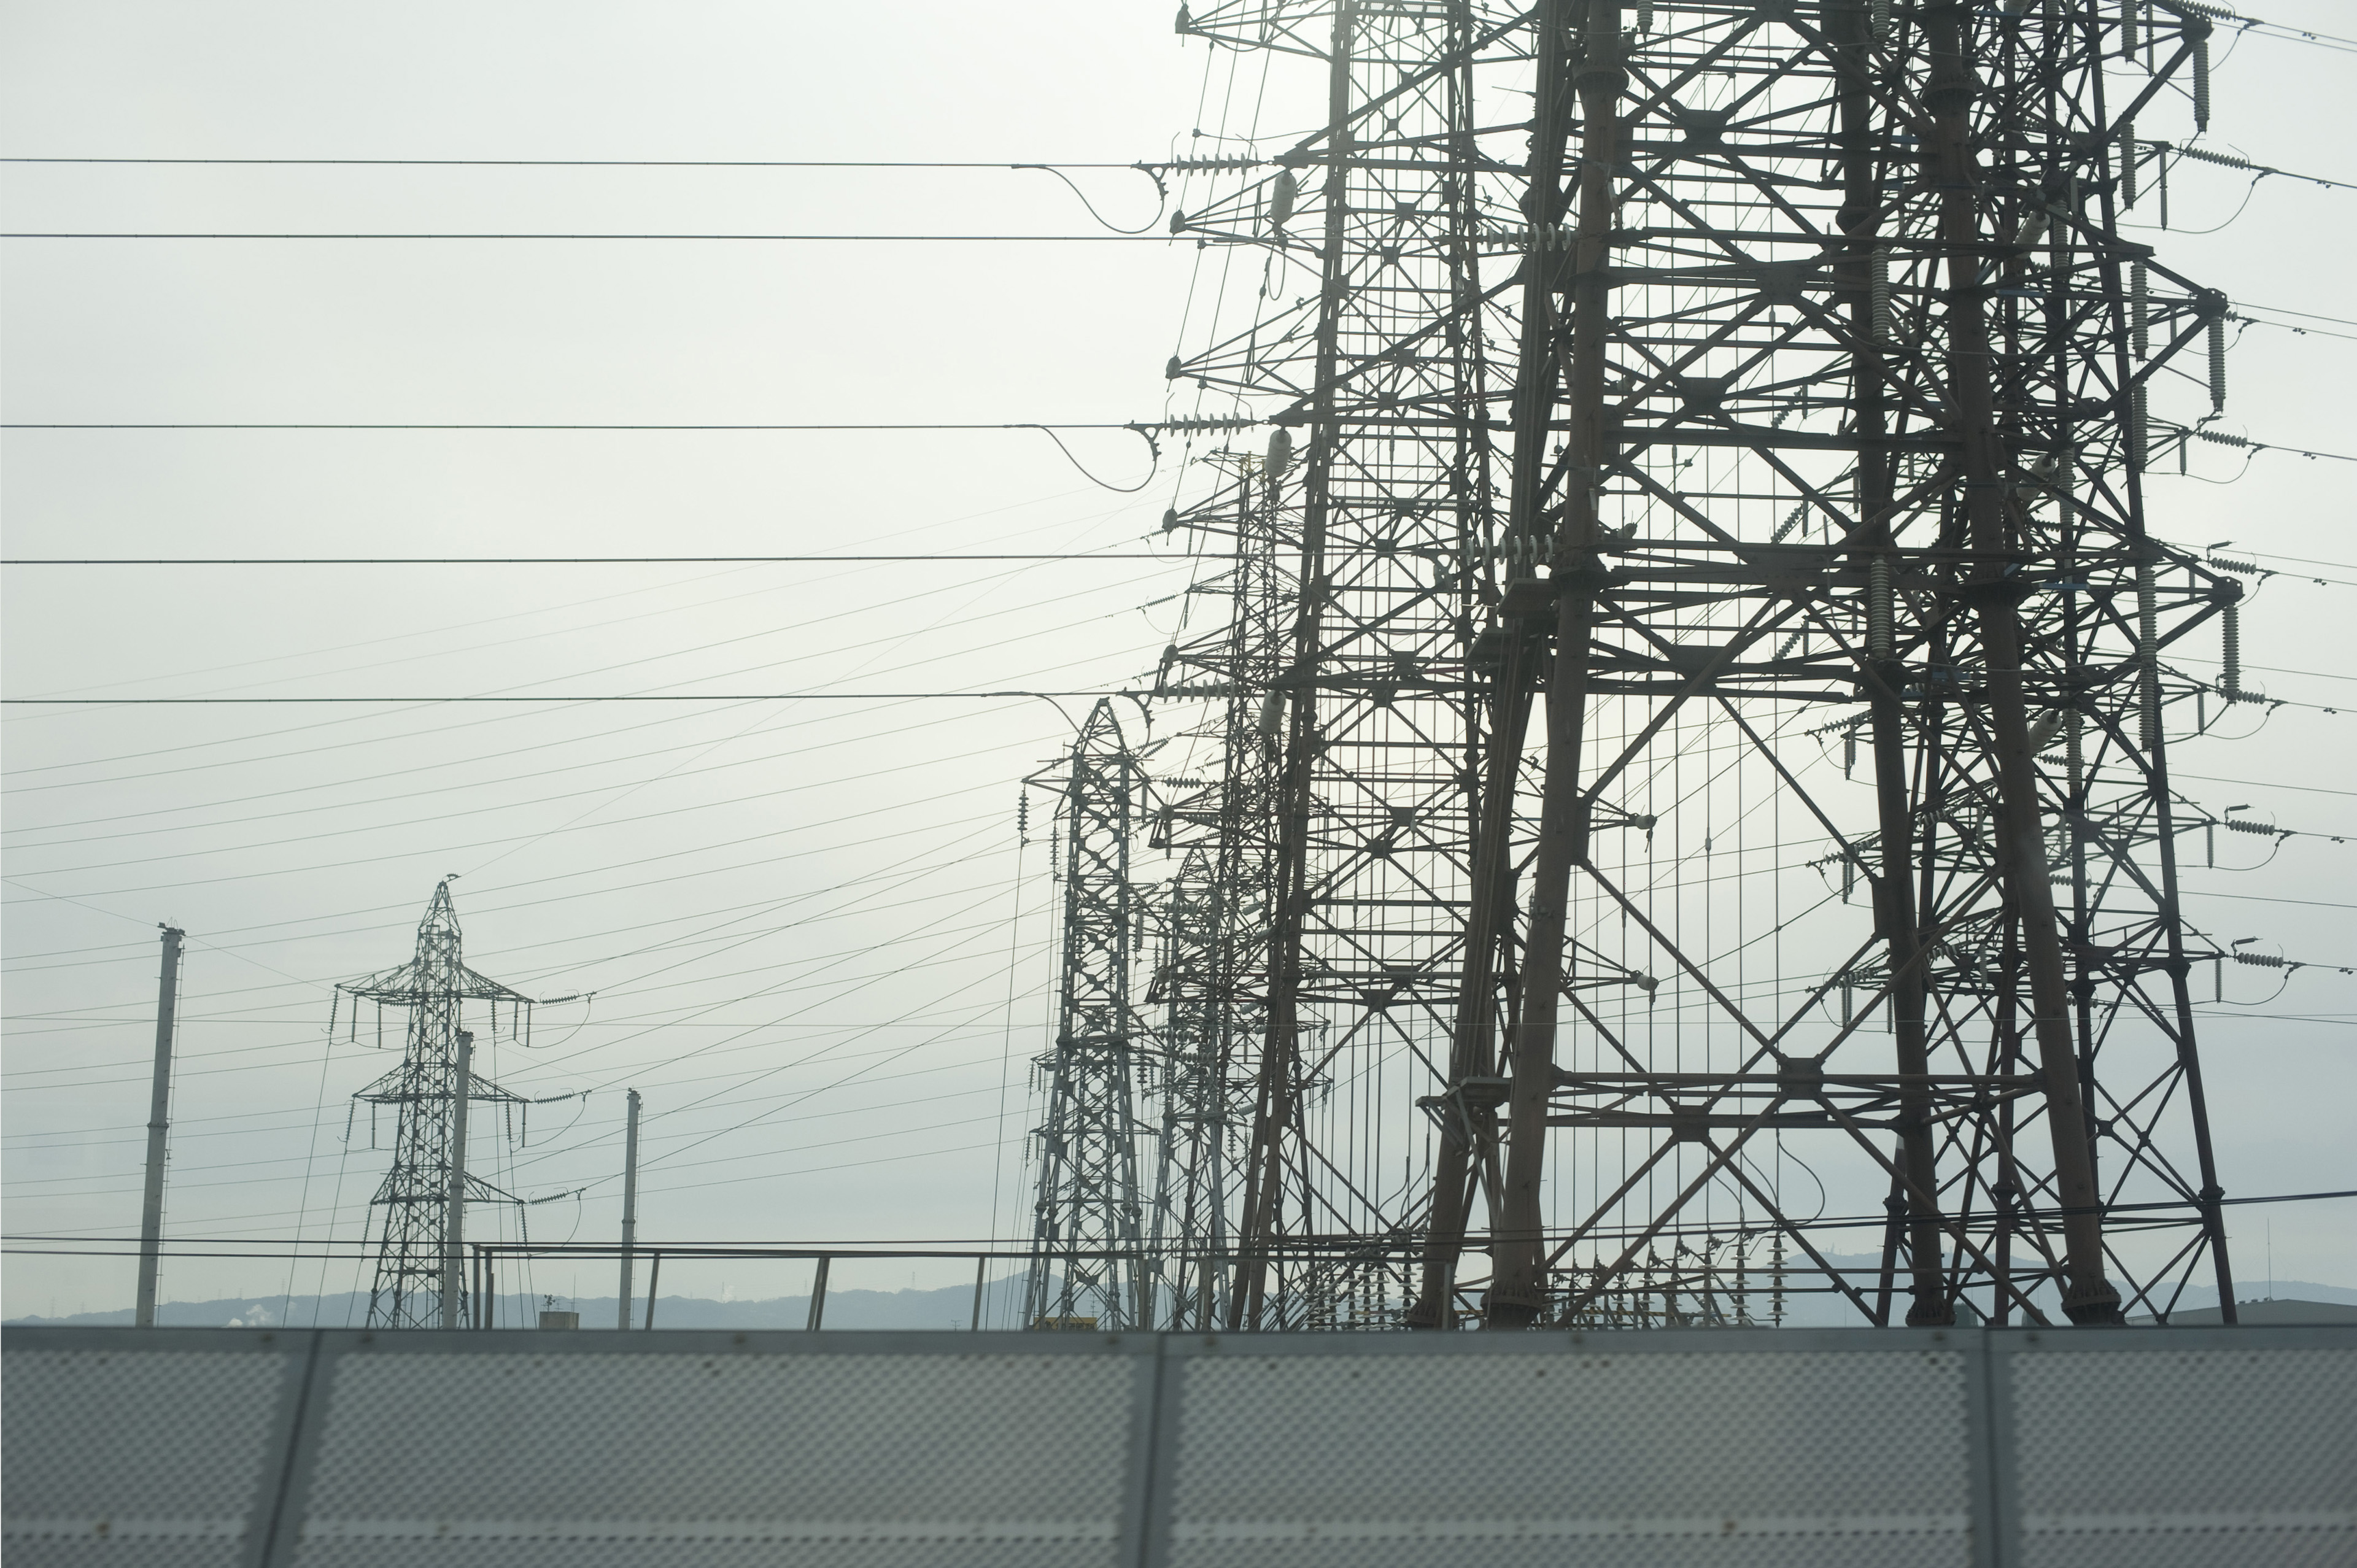 Group of large steel lattice power pylons supplying industry with electricity viewed on a grey misty day